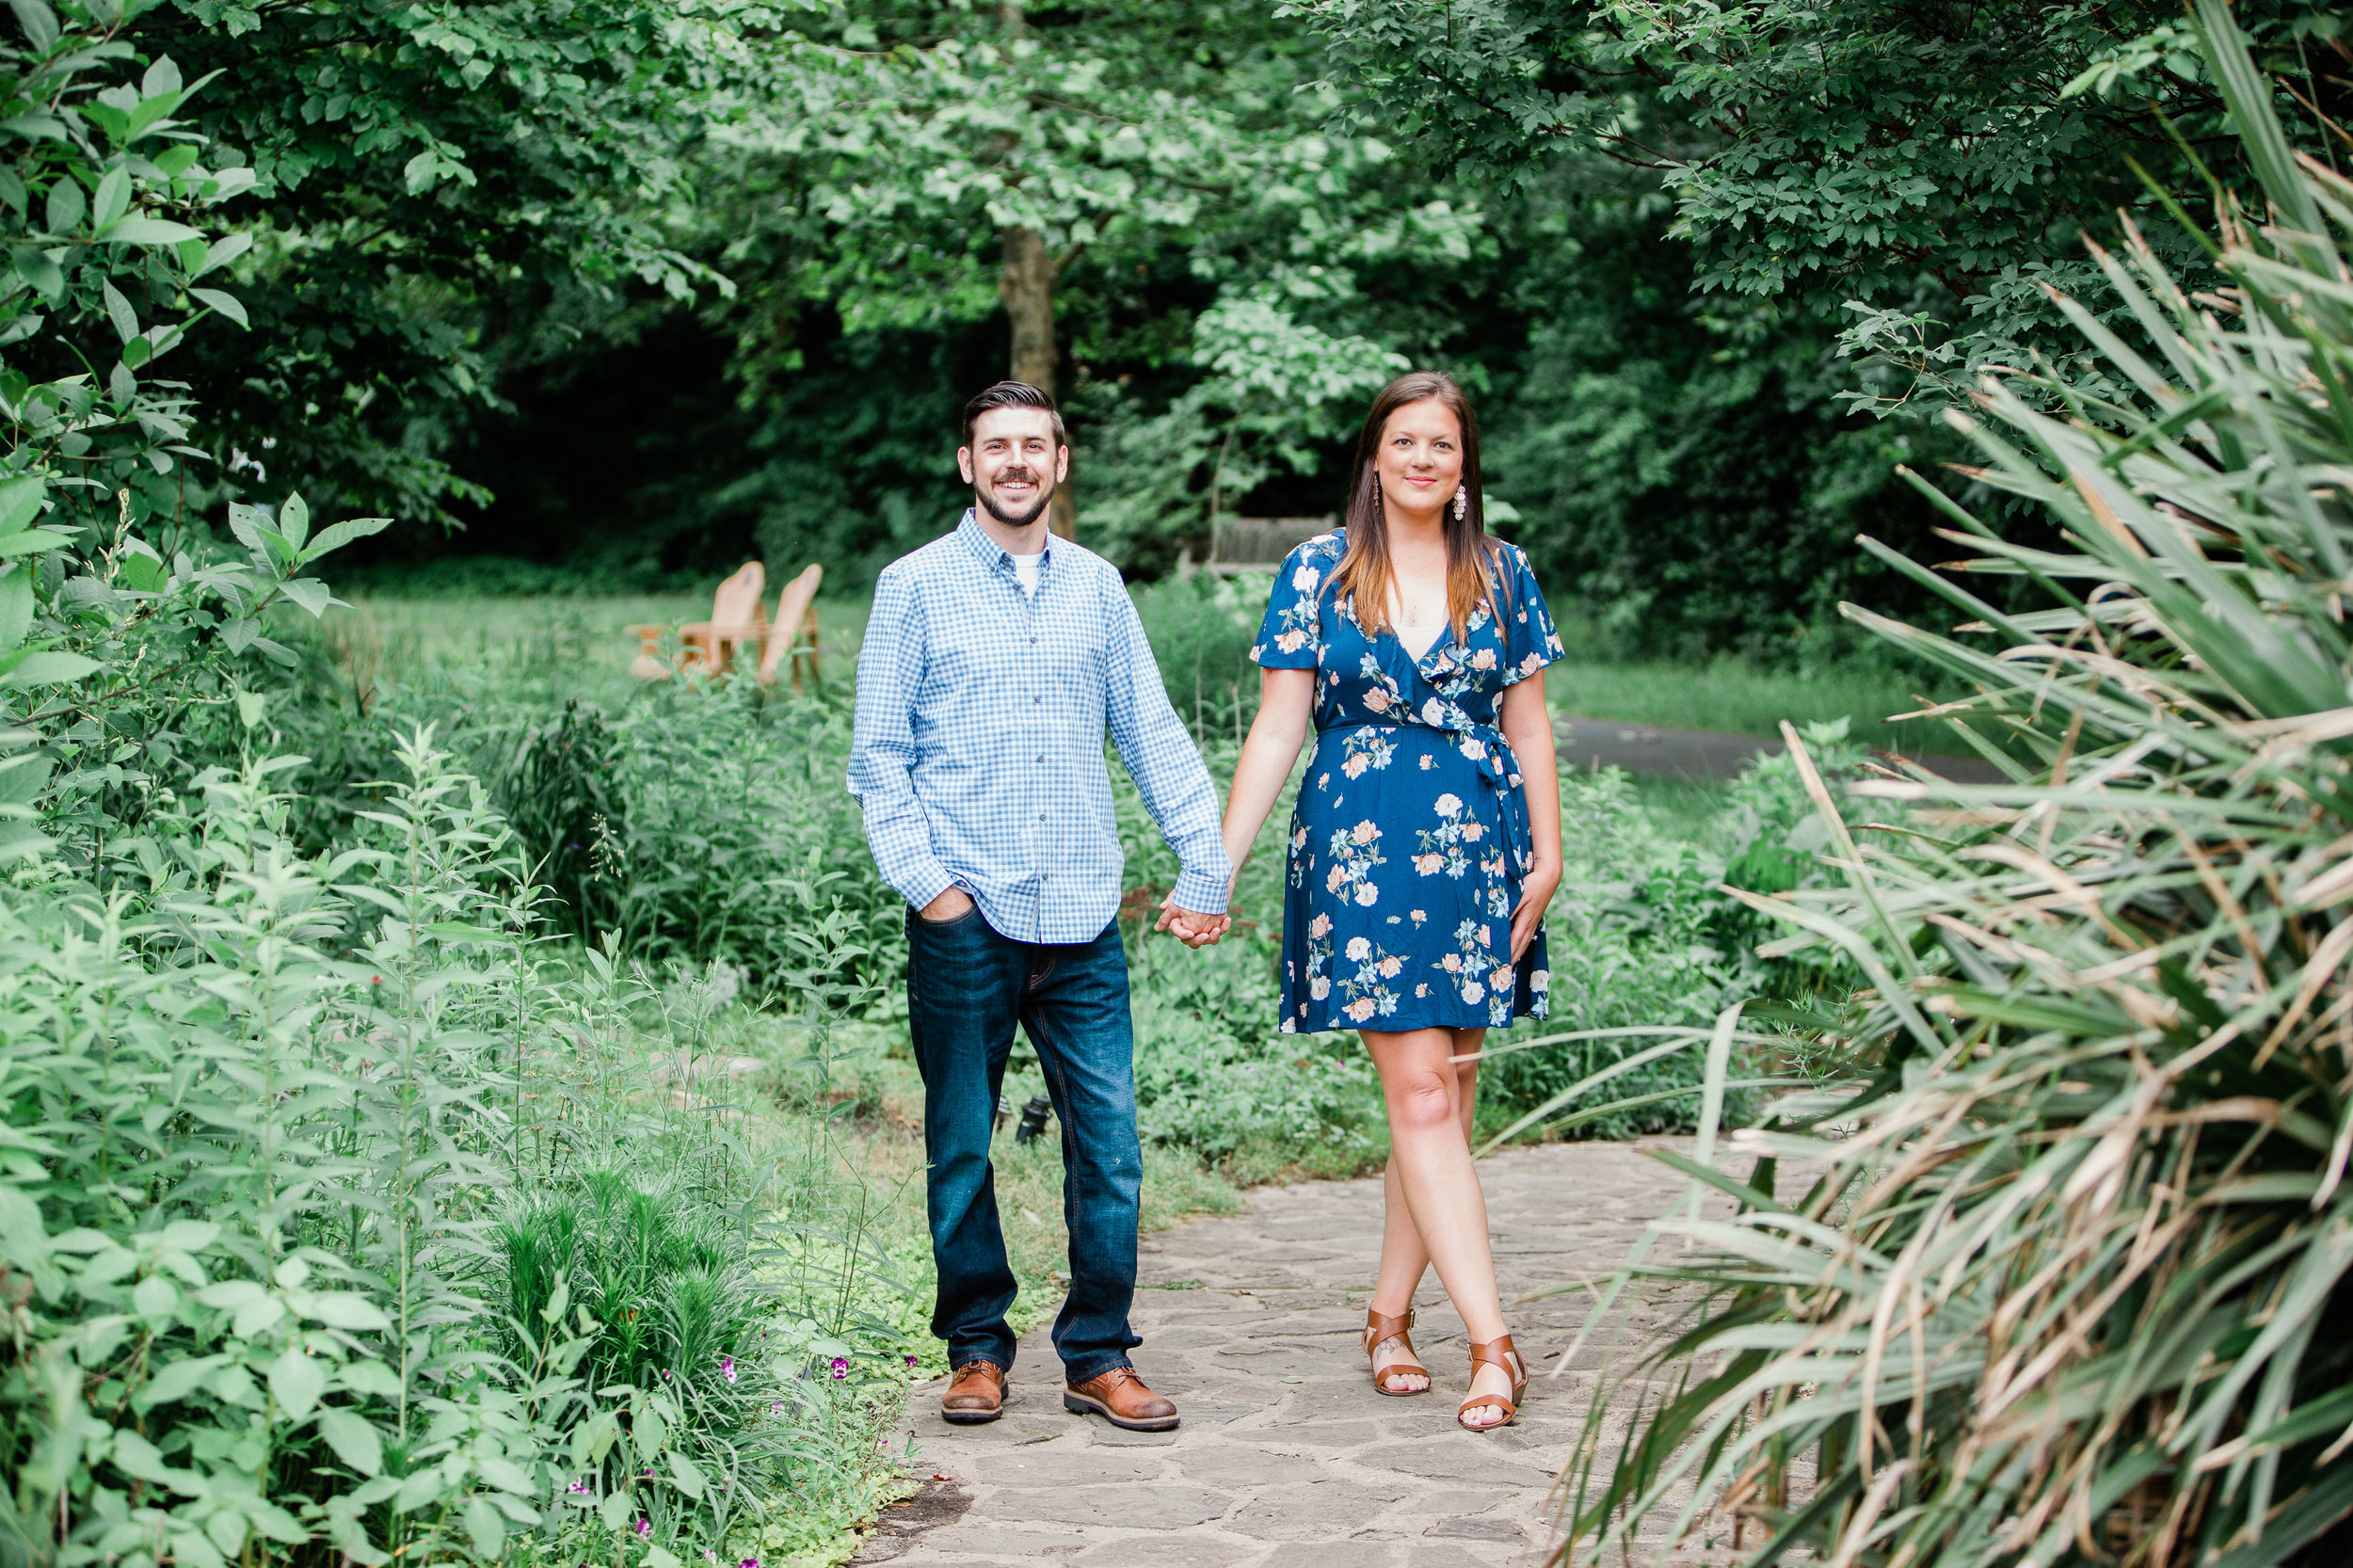 meadowlark_botanical_gardens_engagements-3539.jpg